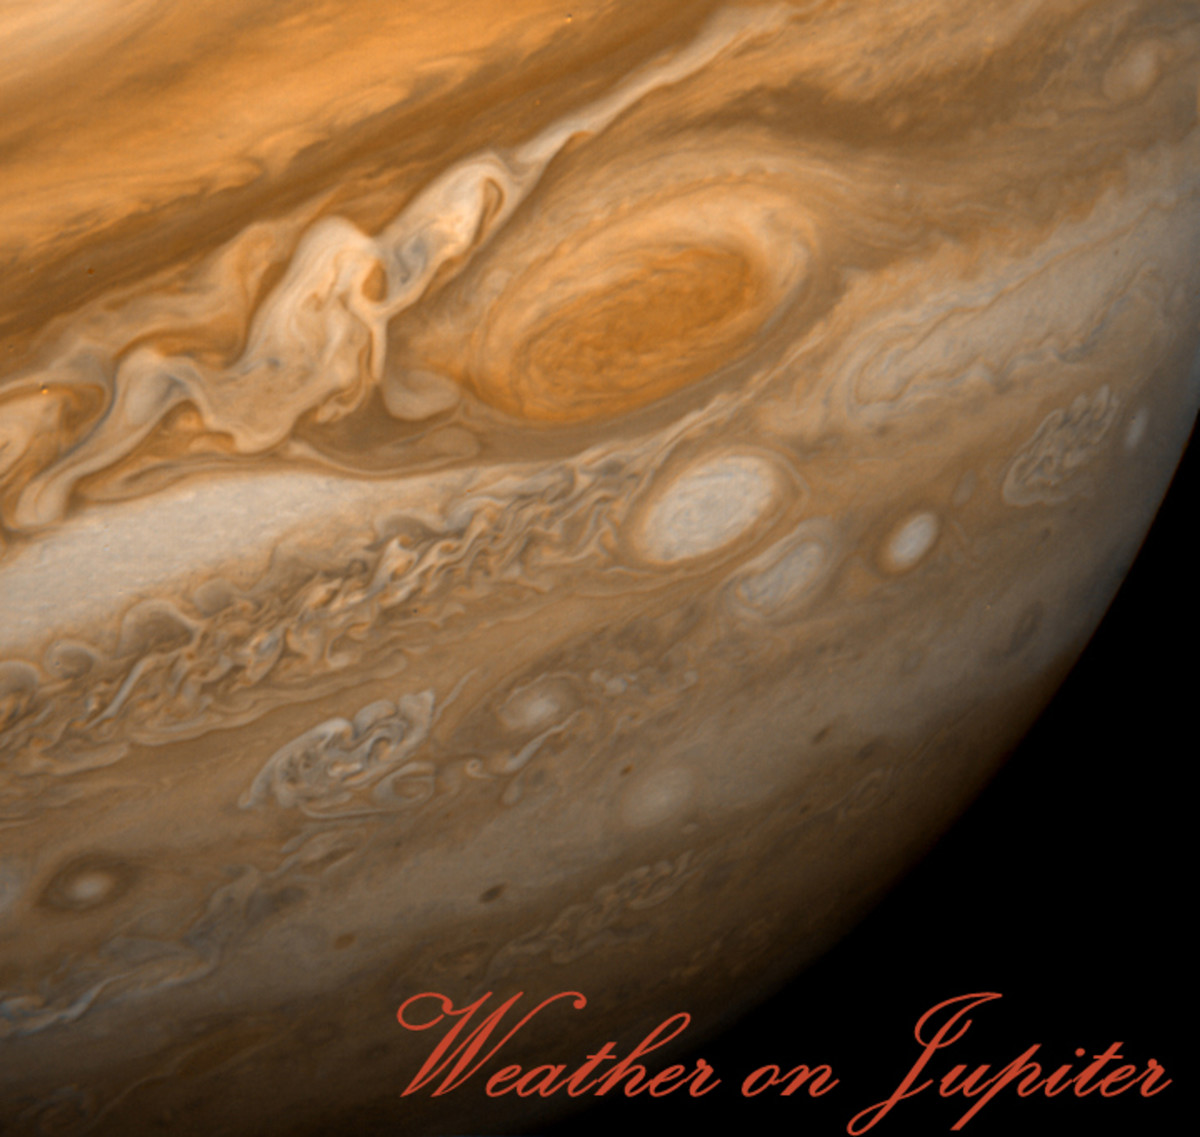 The Great Red Spot and surrounding weather on Jupiter, captured in all their fury by Voyager 1 on Feb. 25, 1979. The spacecraft was 5.7 million miles from Jupiter.